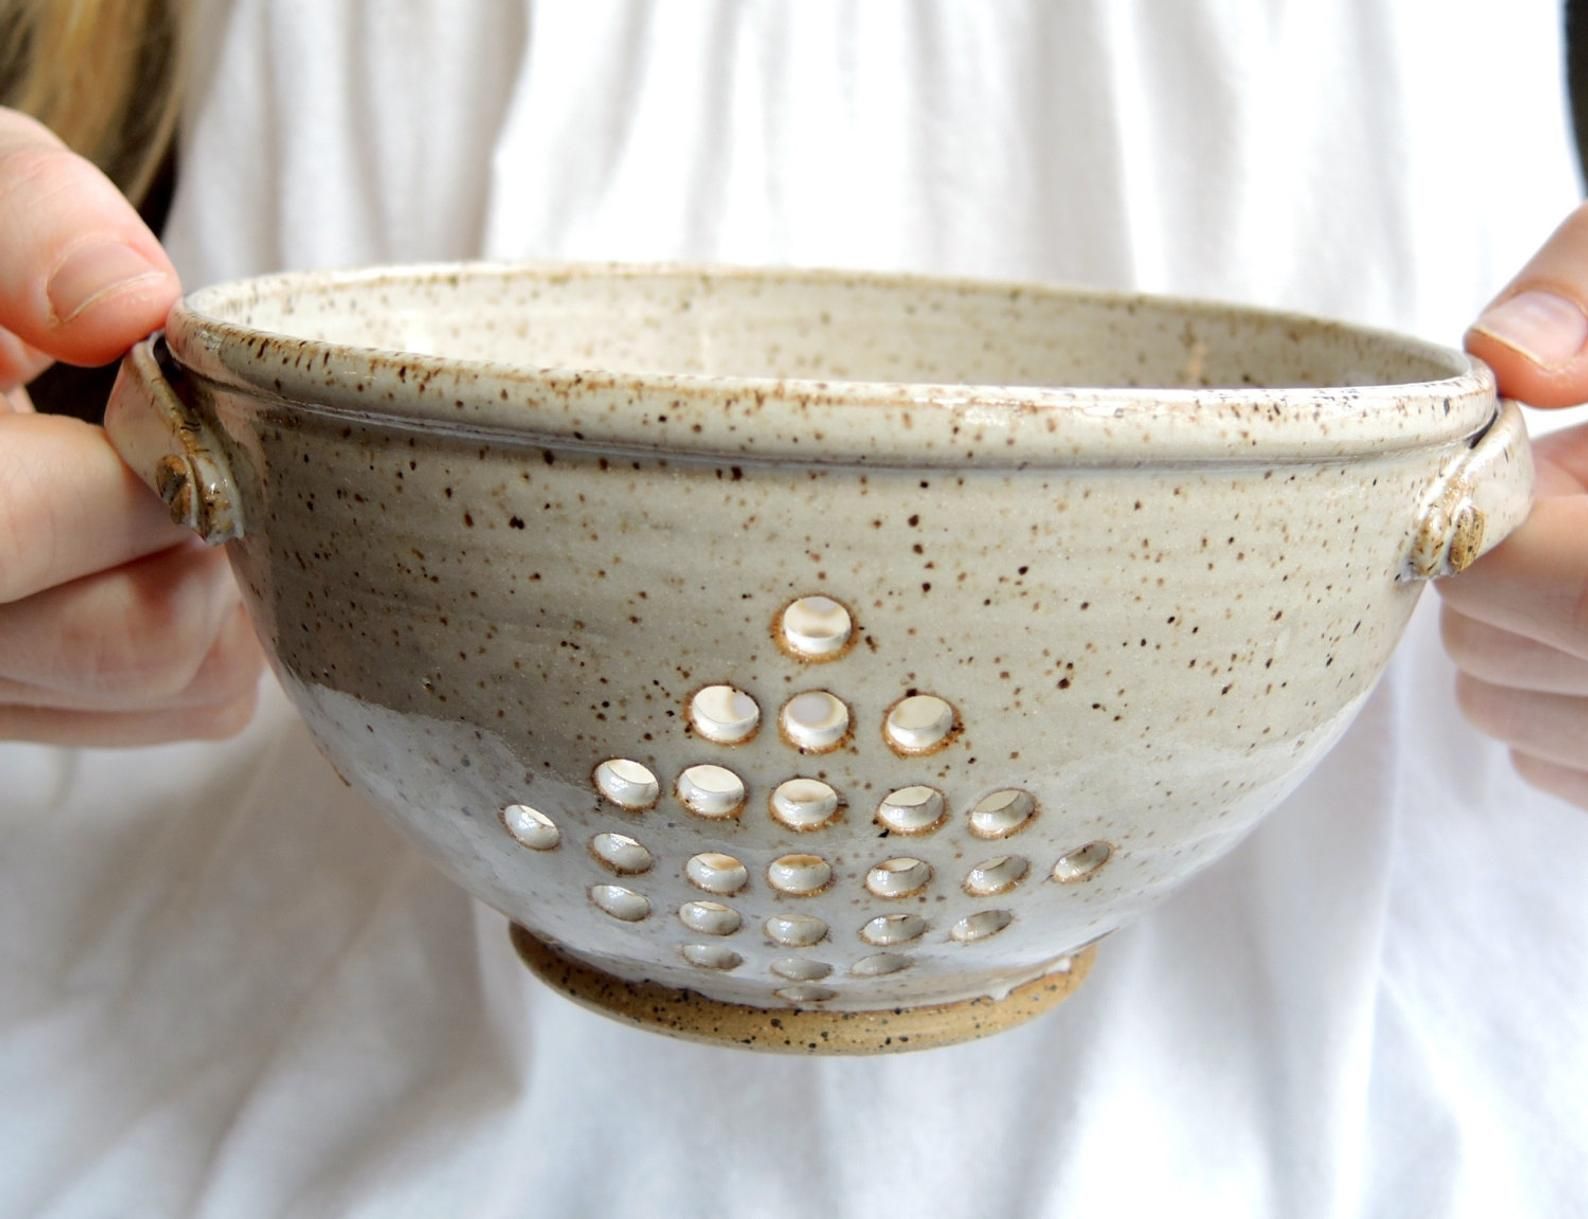 Classic berry bowl in speckled white with handles - pottery strainer for berries